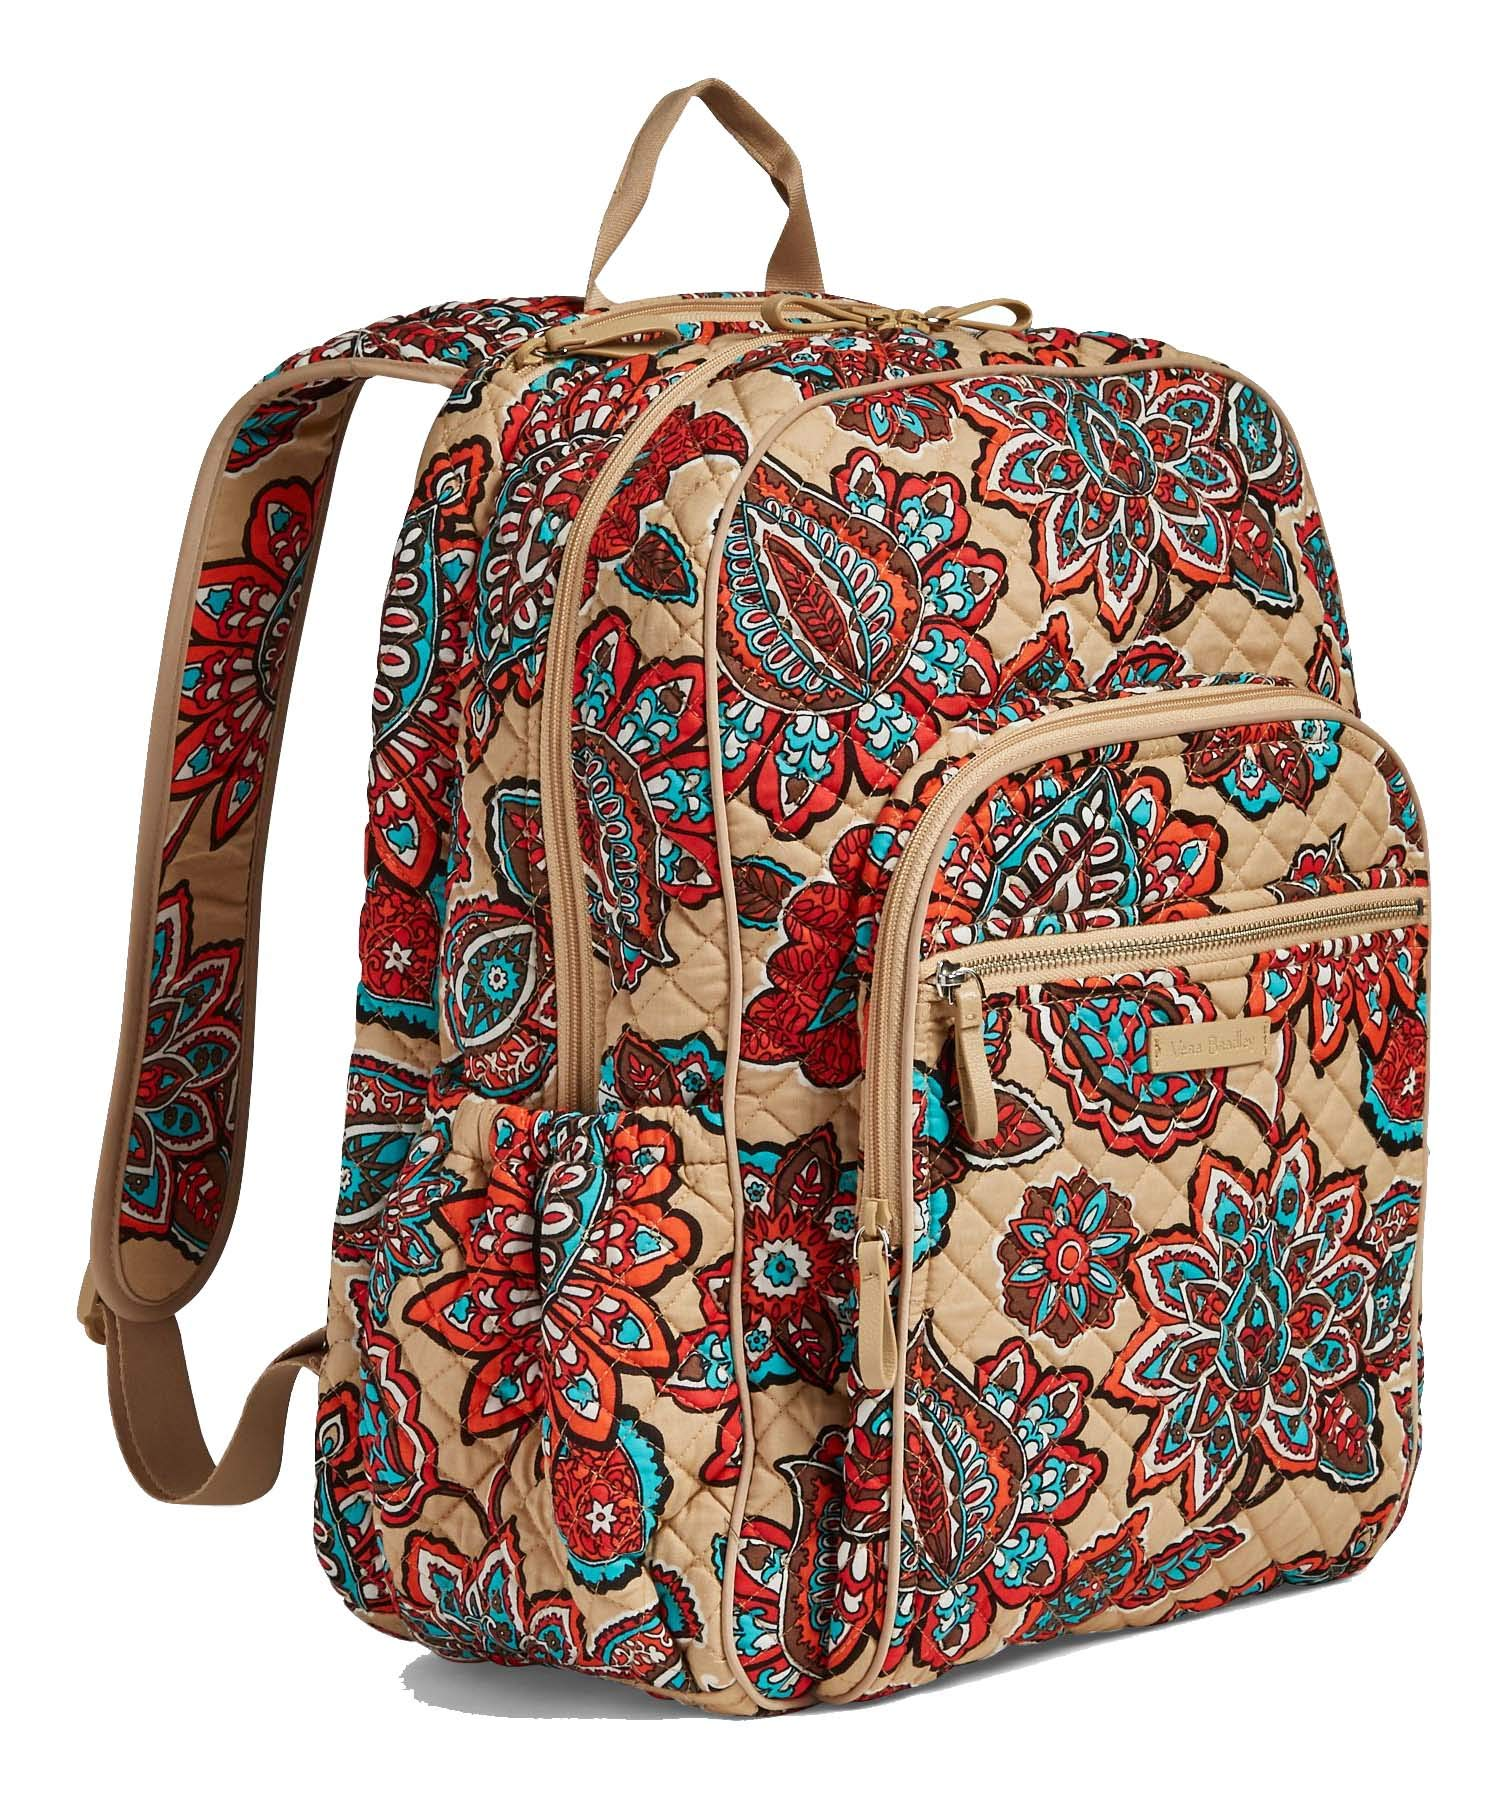 Vera Bradley Iconic Campus Backpack, Signature Cotton (One Size, Desert Floral) by Vera Bradley